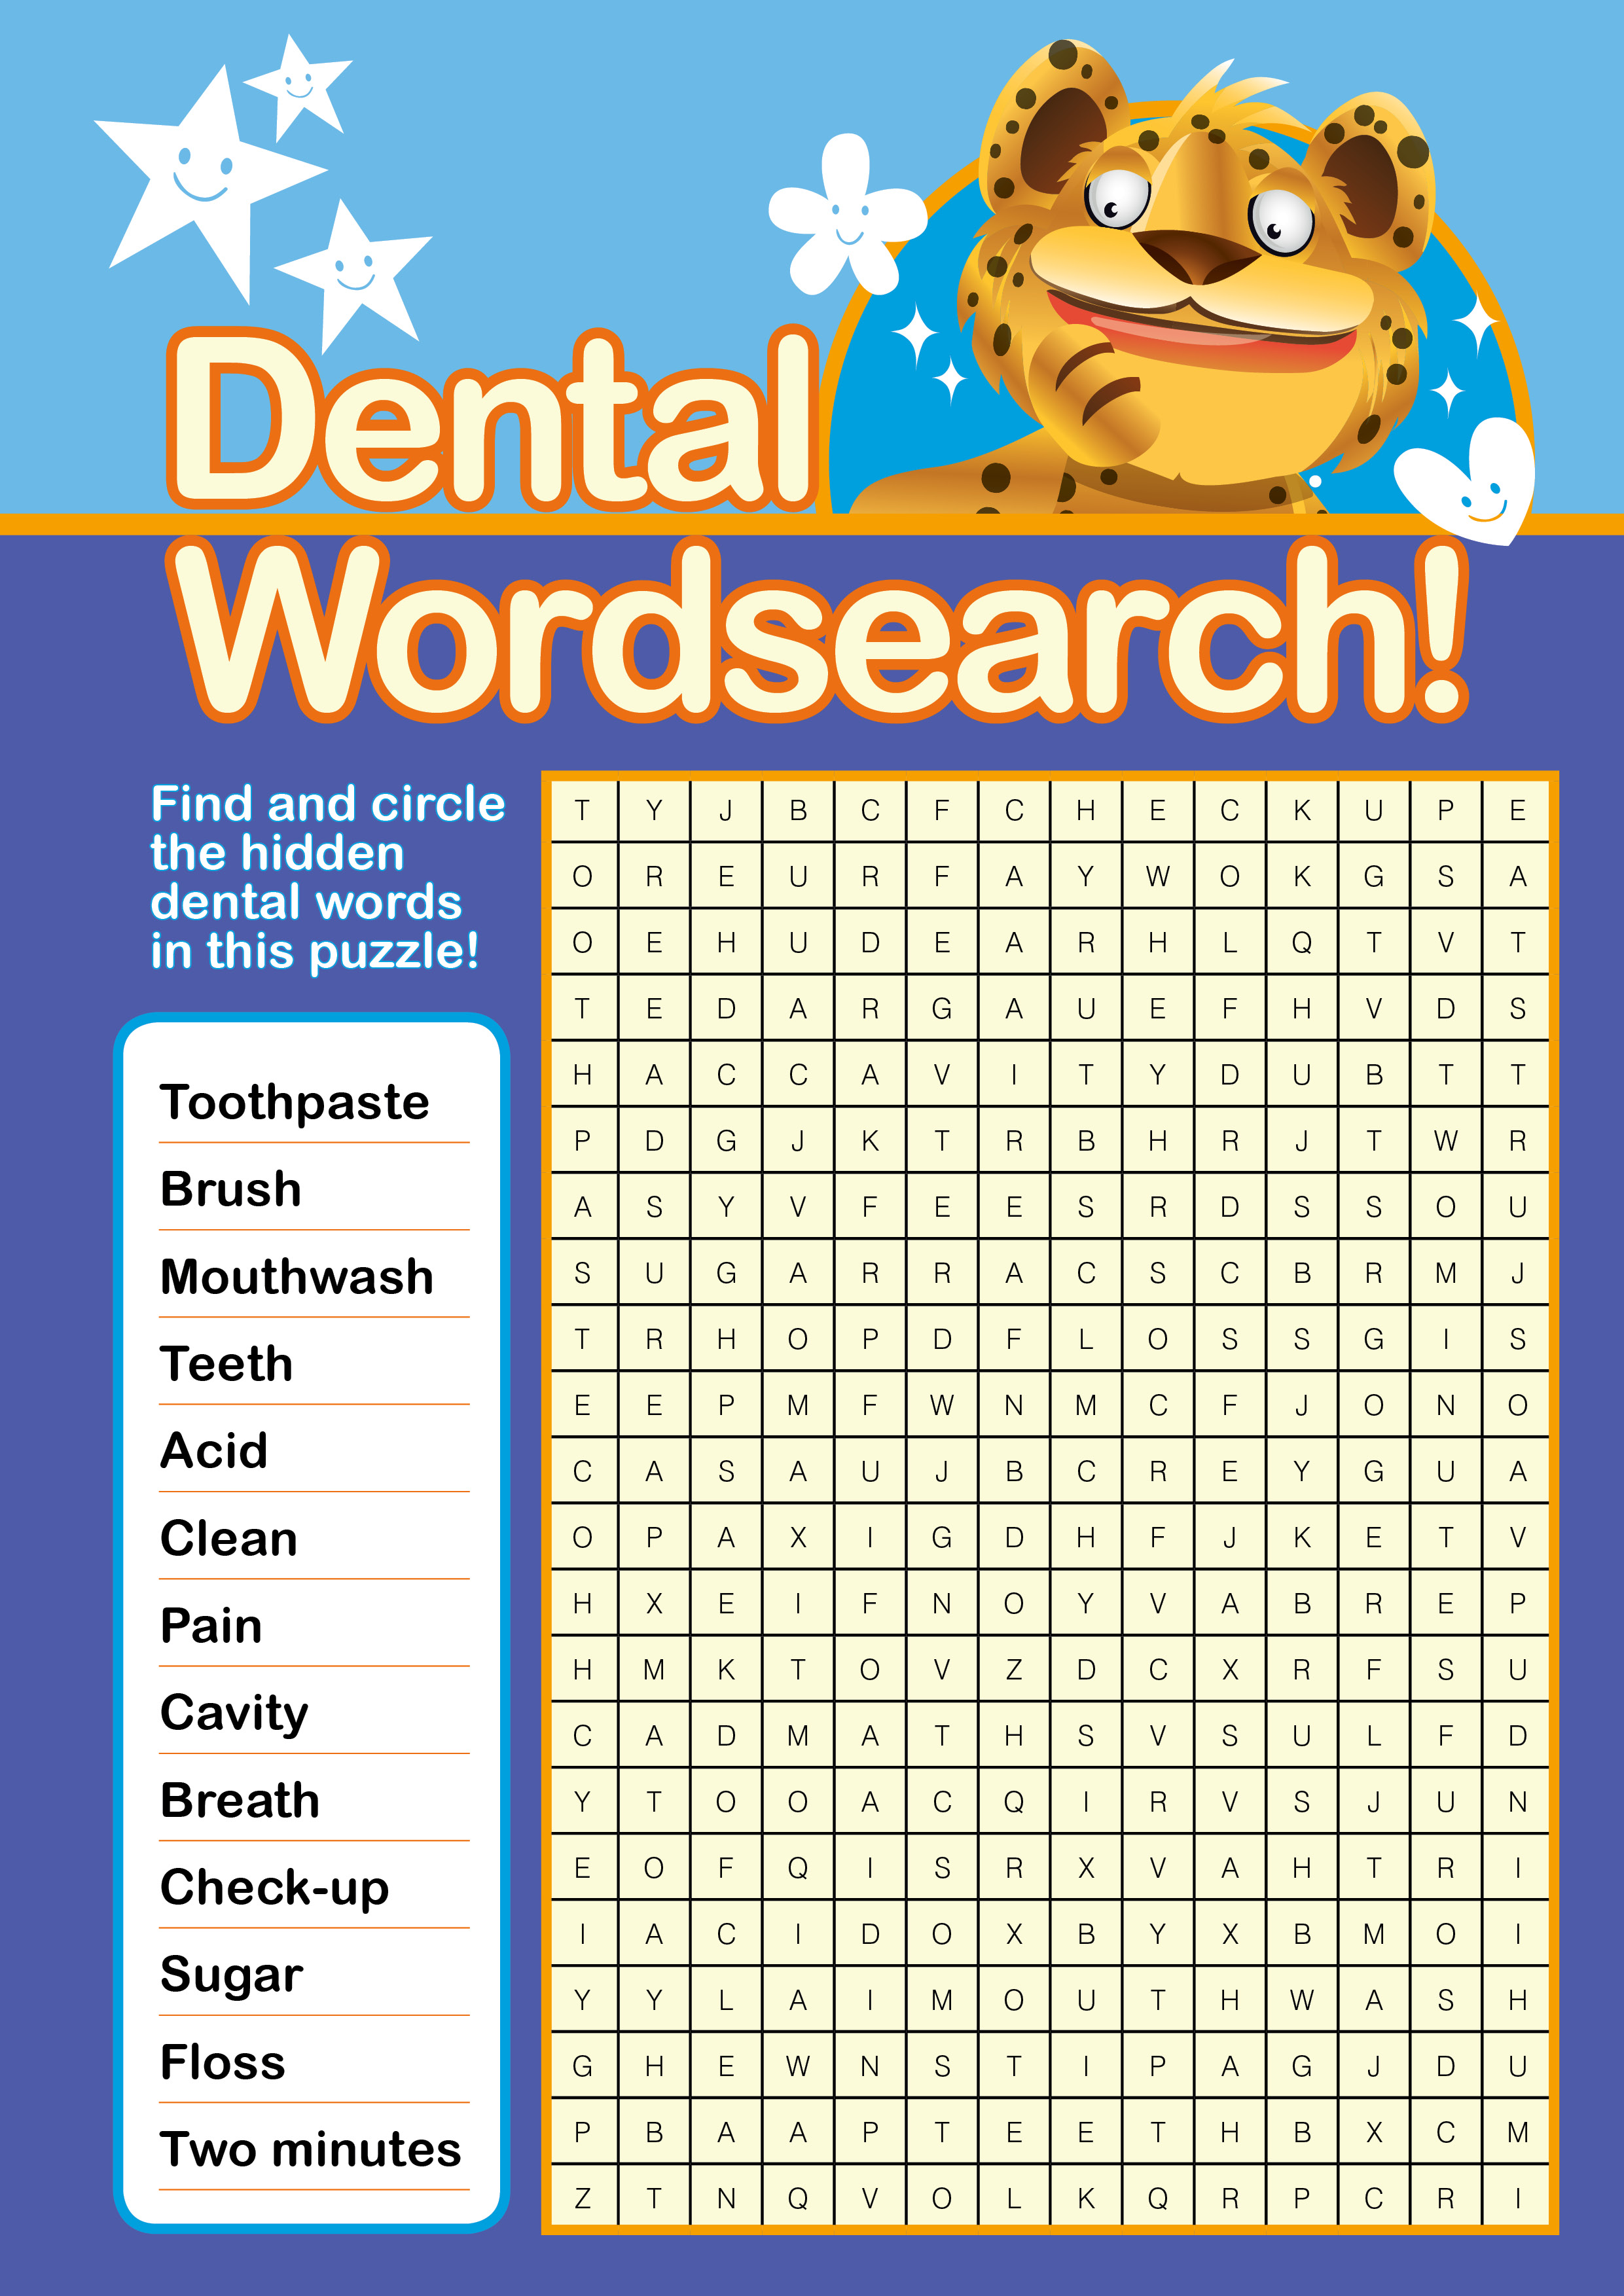 Download Your Free Oral Health Word Search